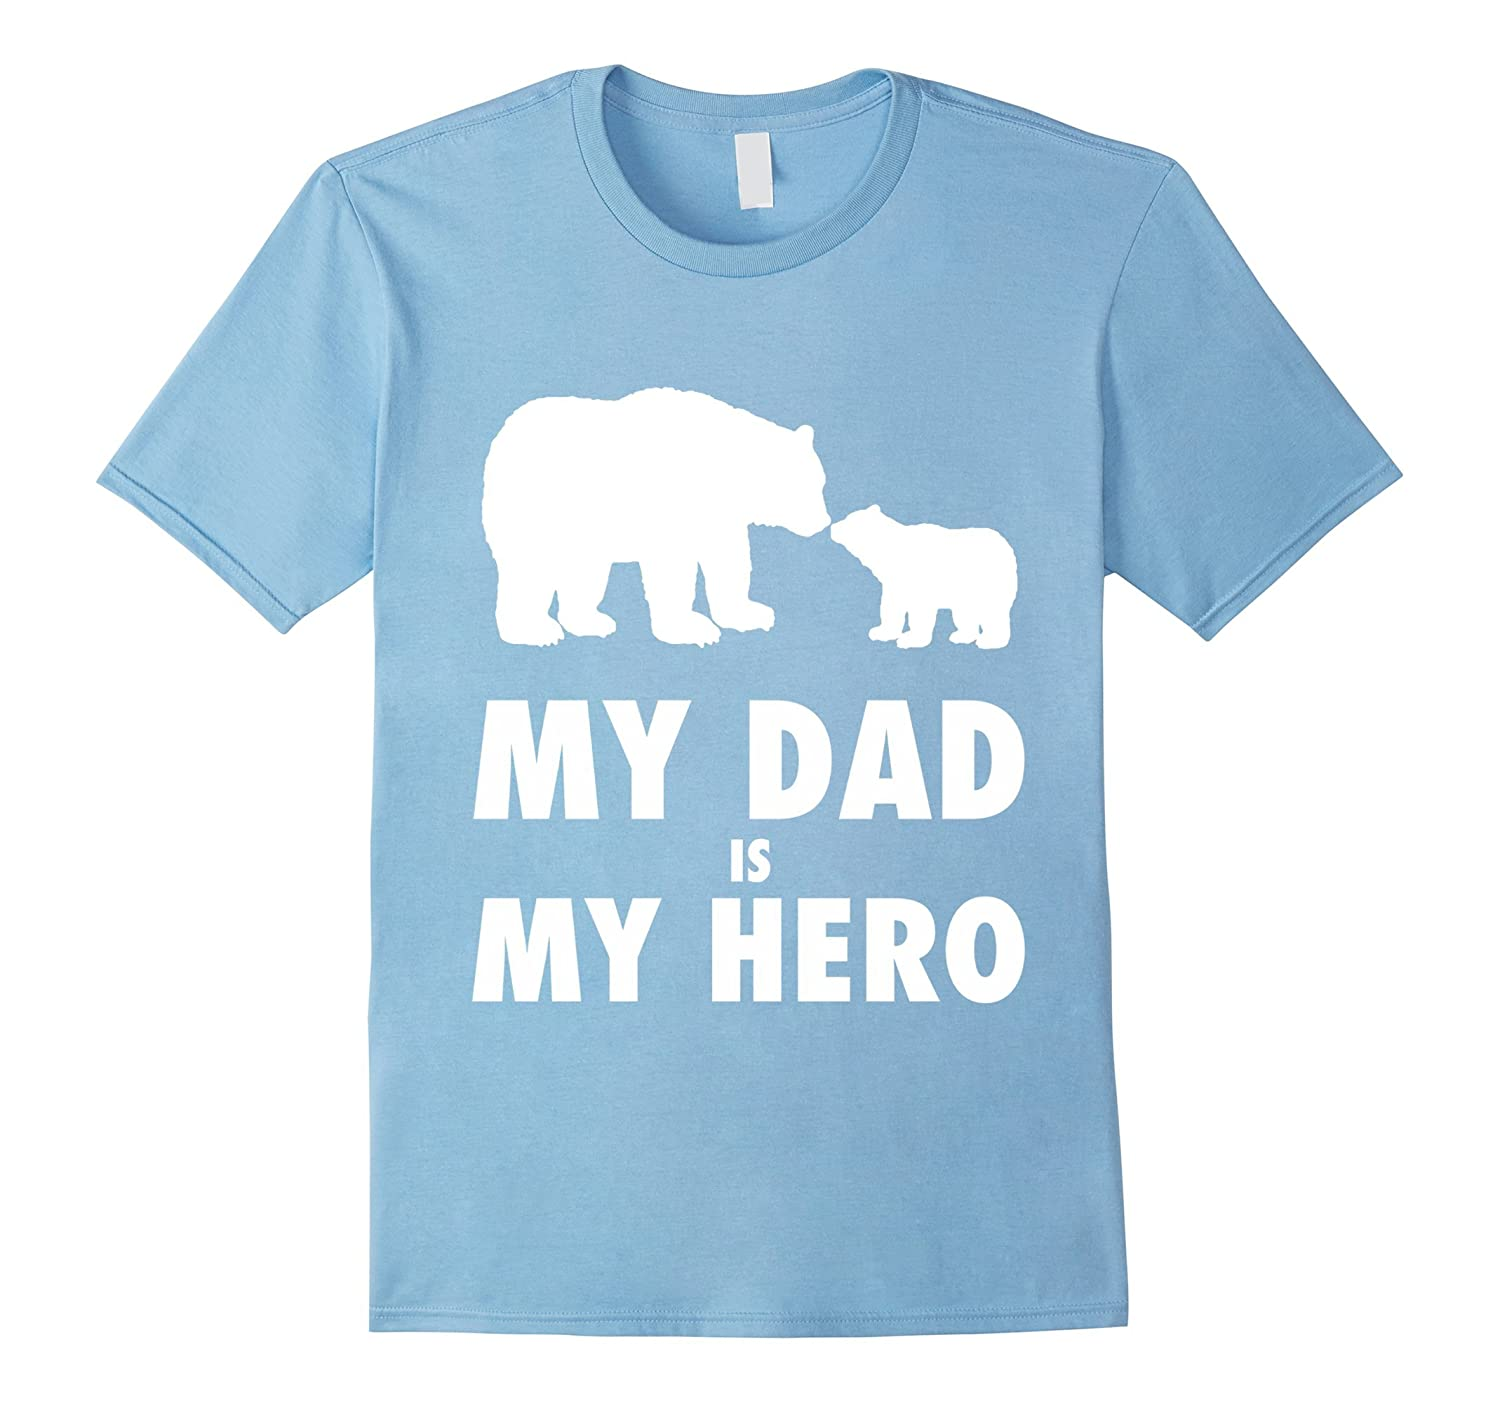 Usaprint Fathers Day Dad T Shirt My Dad My Hero Design T: Daddy Is My Hero! My Dad Is My Hero T-Shirt